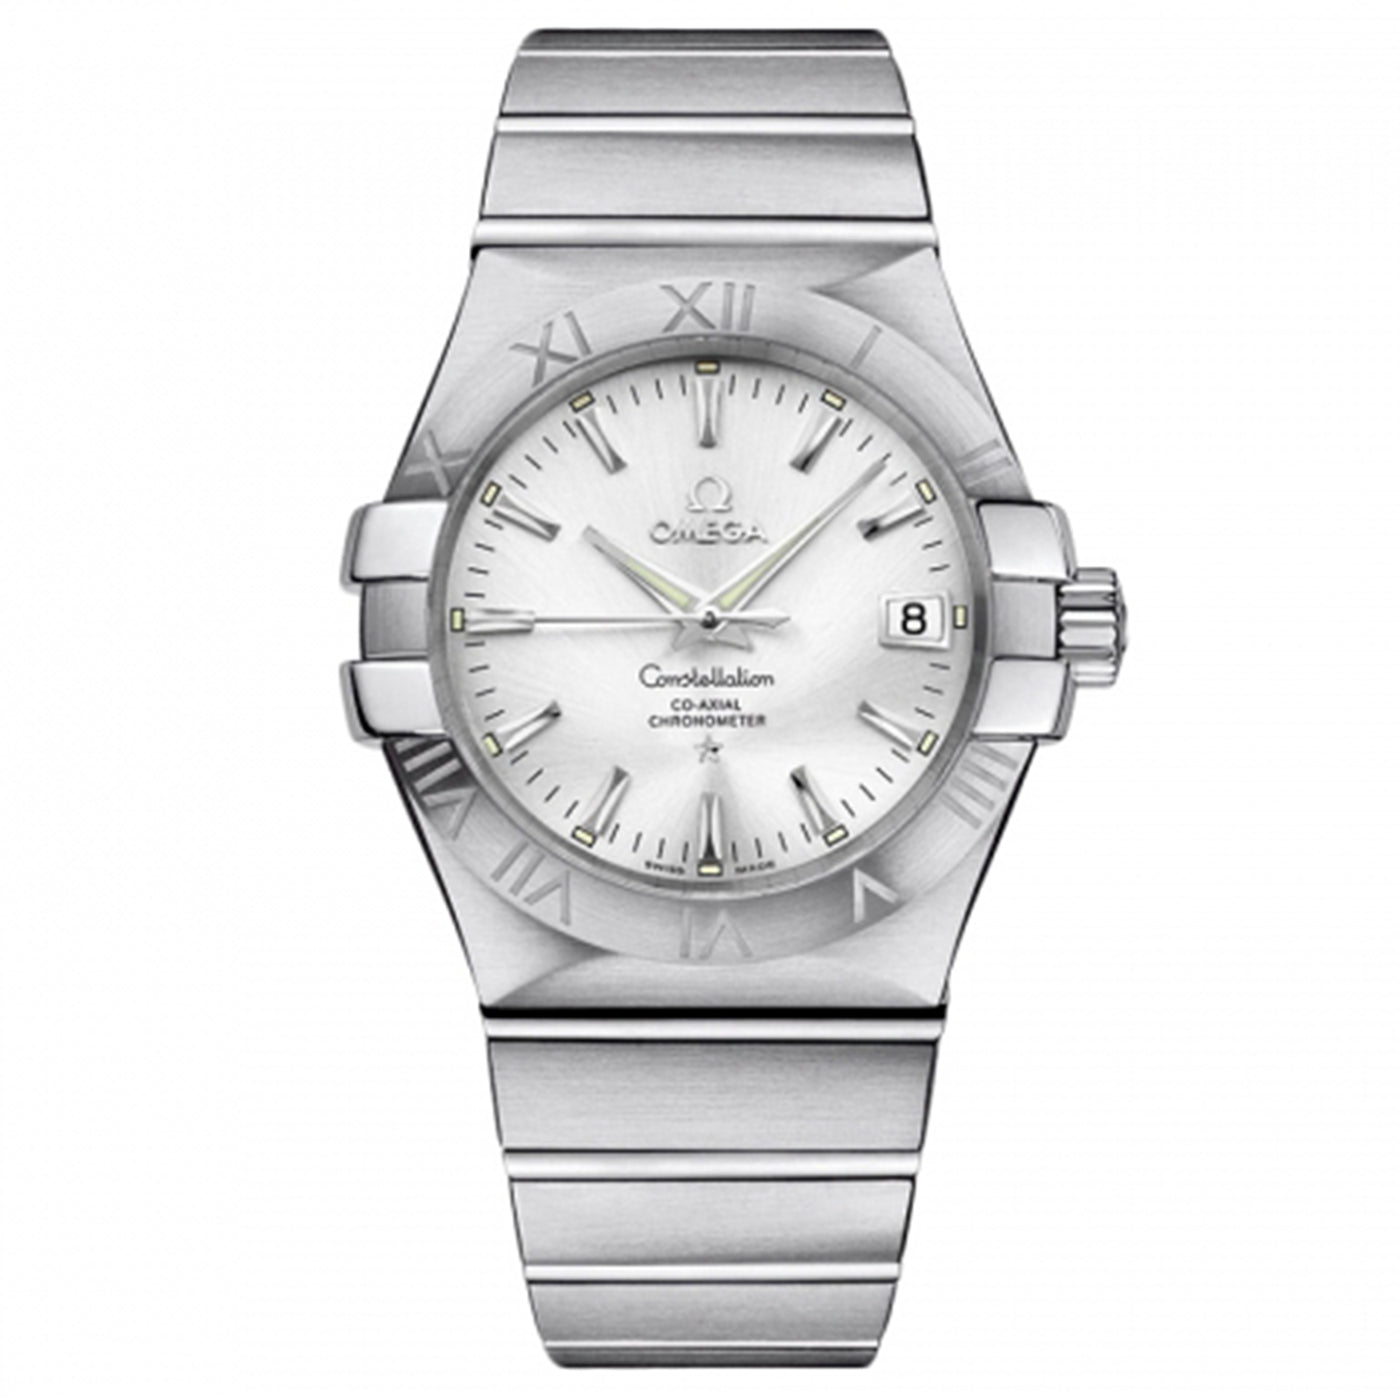 Omega Constellation Co-Axial Silver Dial Men Watch 123.10.35.20.02.001